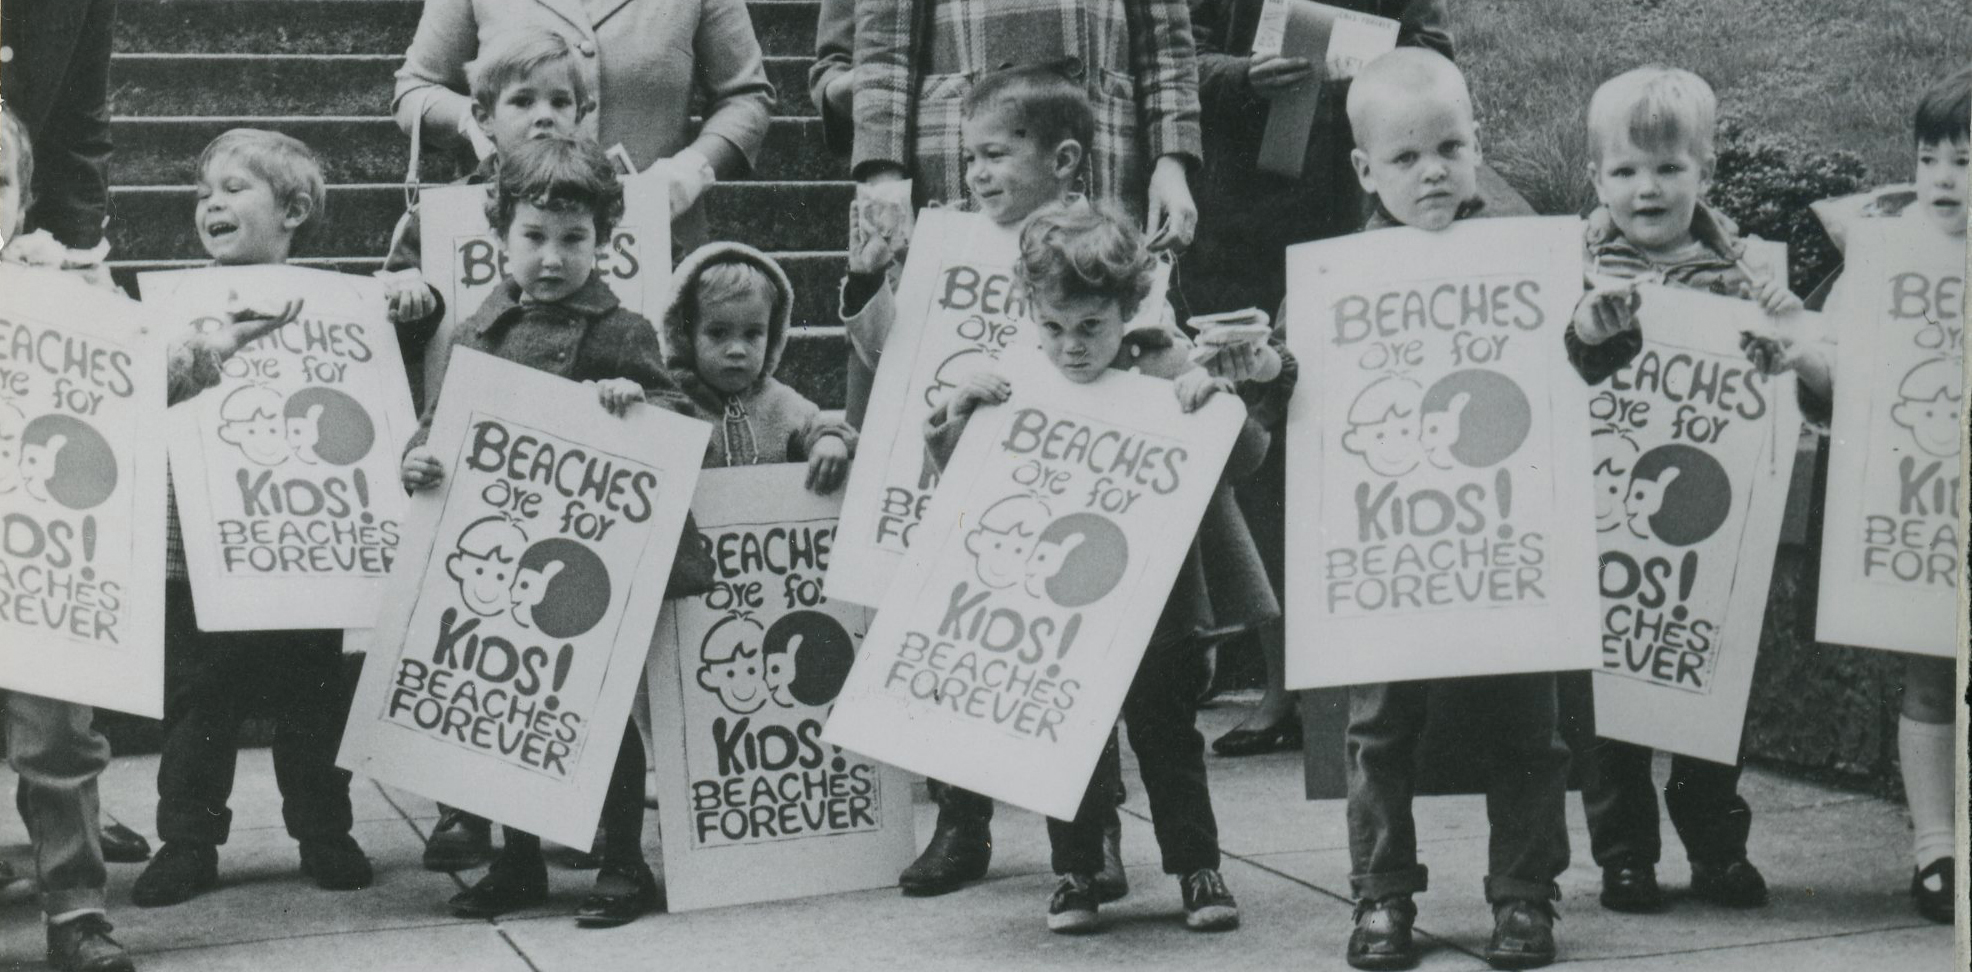 Beaches are for Kids event, 1968